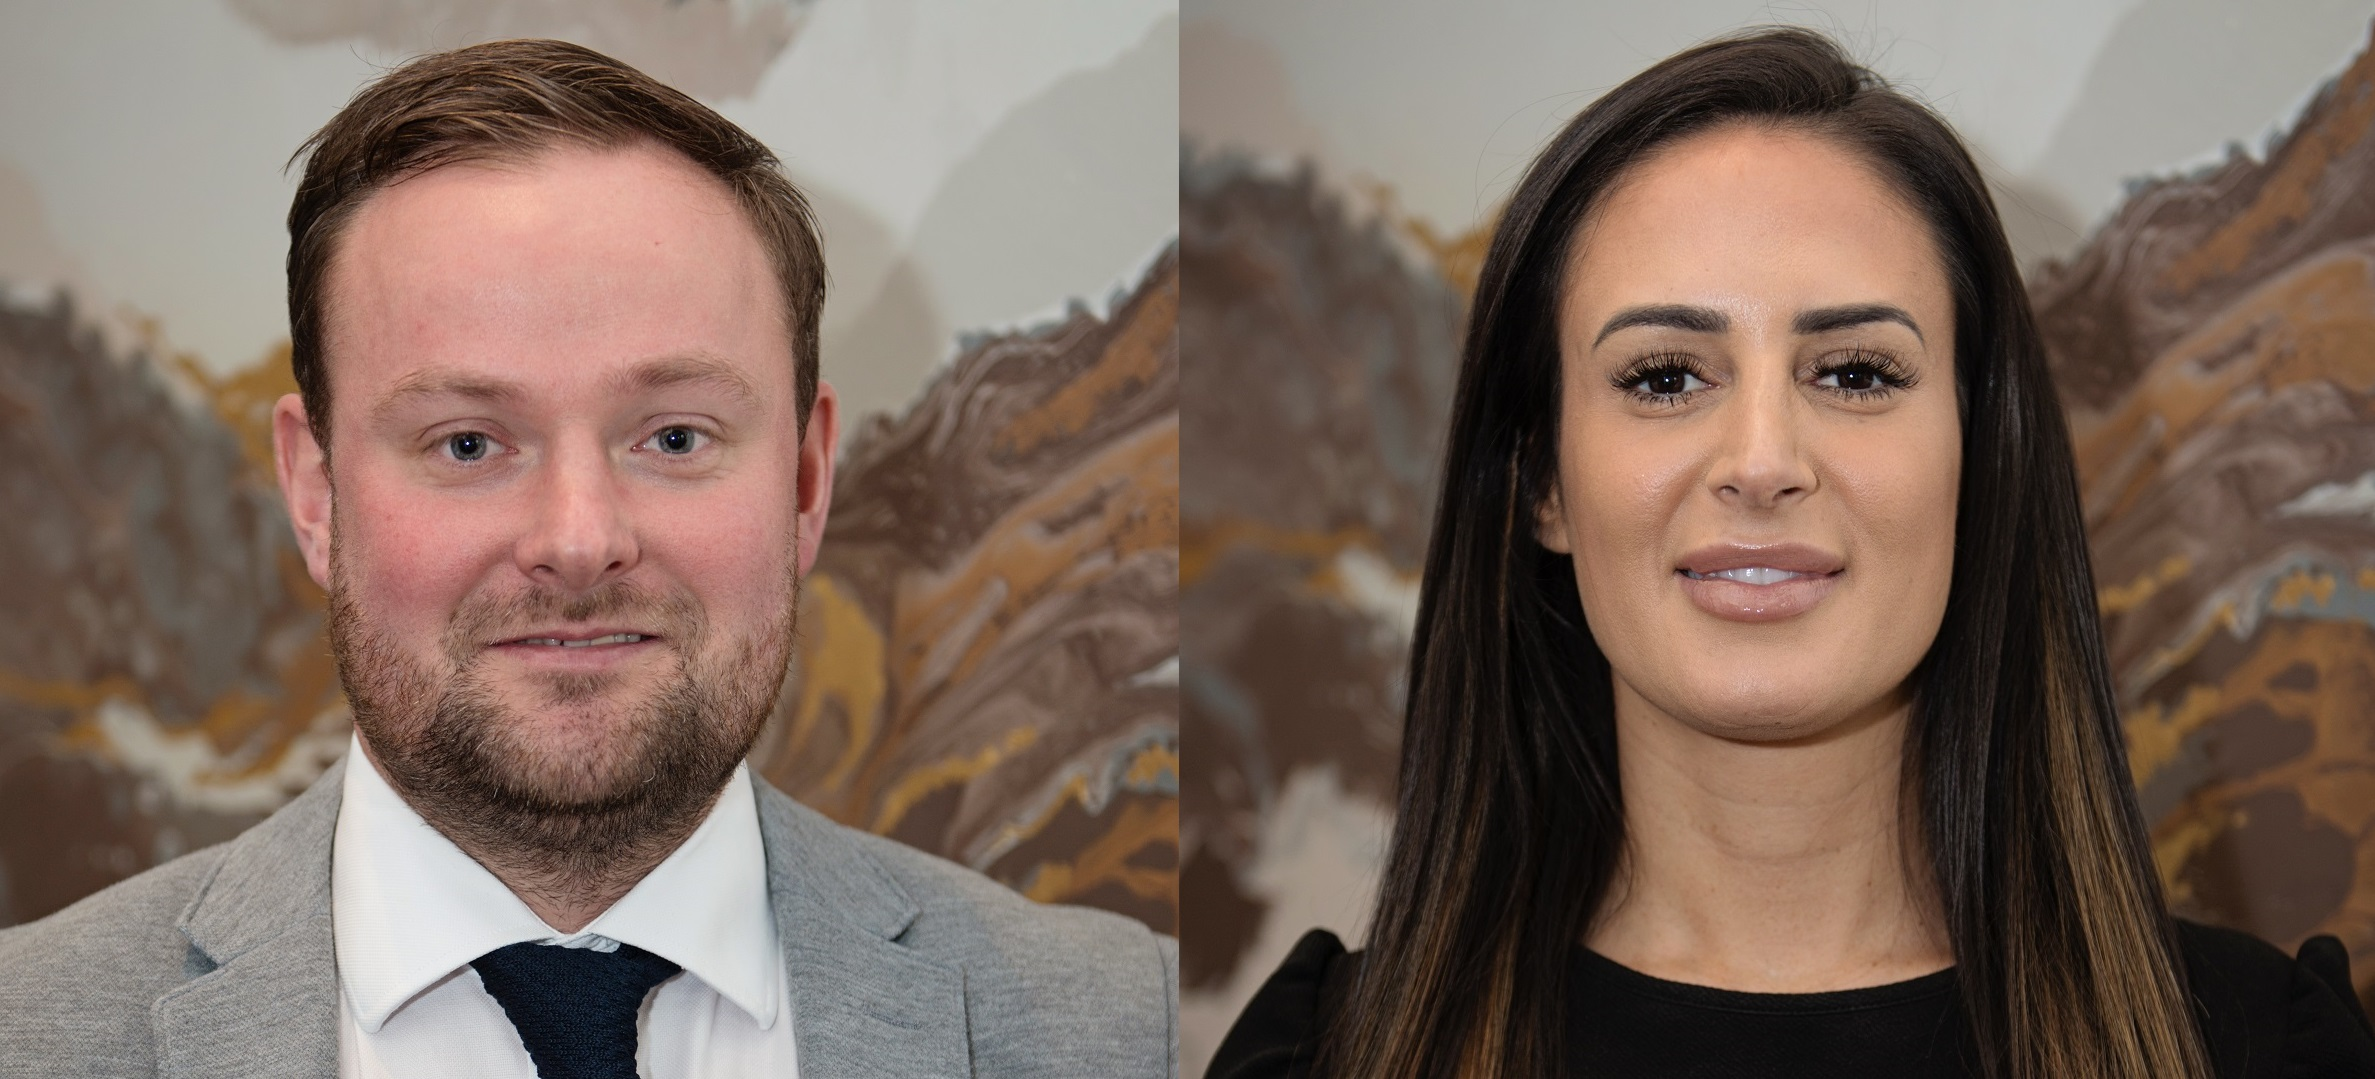 New recruits strengthen growing niche conveyancing law firm